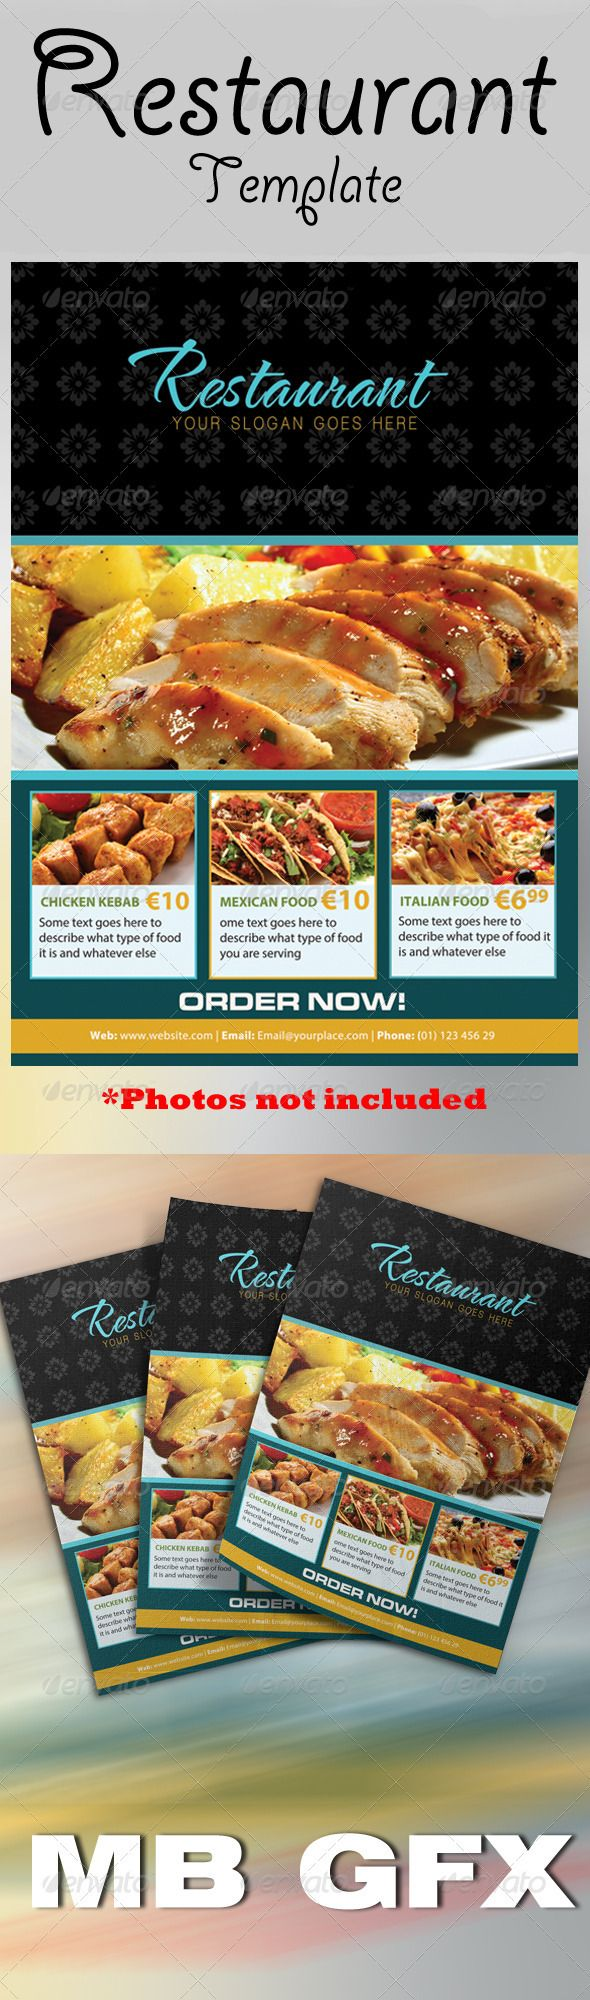 The Restaurant Flyer  Cafe Restaurant Flyer Template And Restaurants